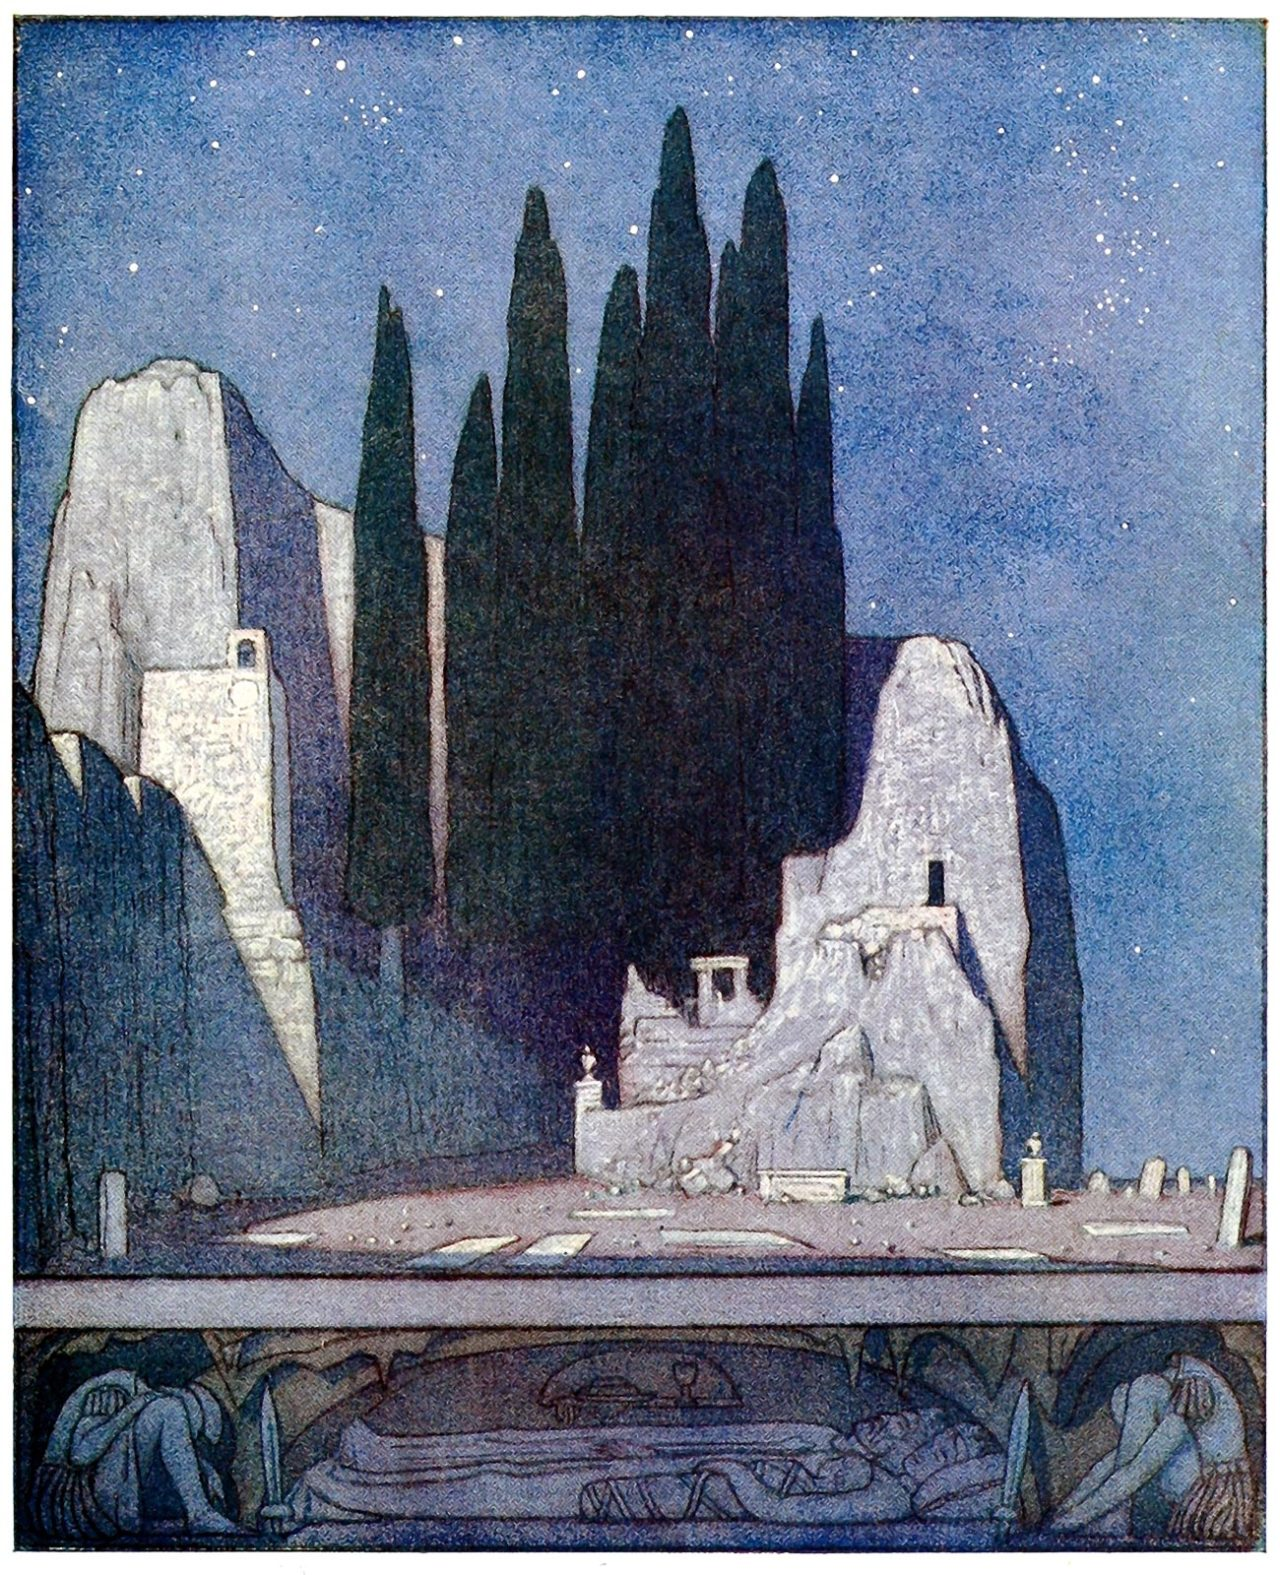 oldbookillustrations:  The graveyard.  Frederick Cayley Robinson, from The blue bird, by  Maurice Maeterlinck, New York, 1920.  (Source: archive.org)